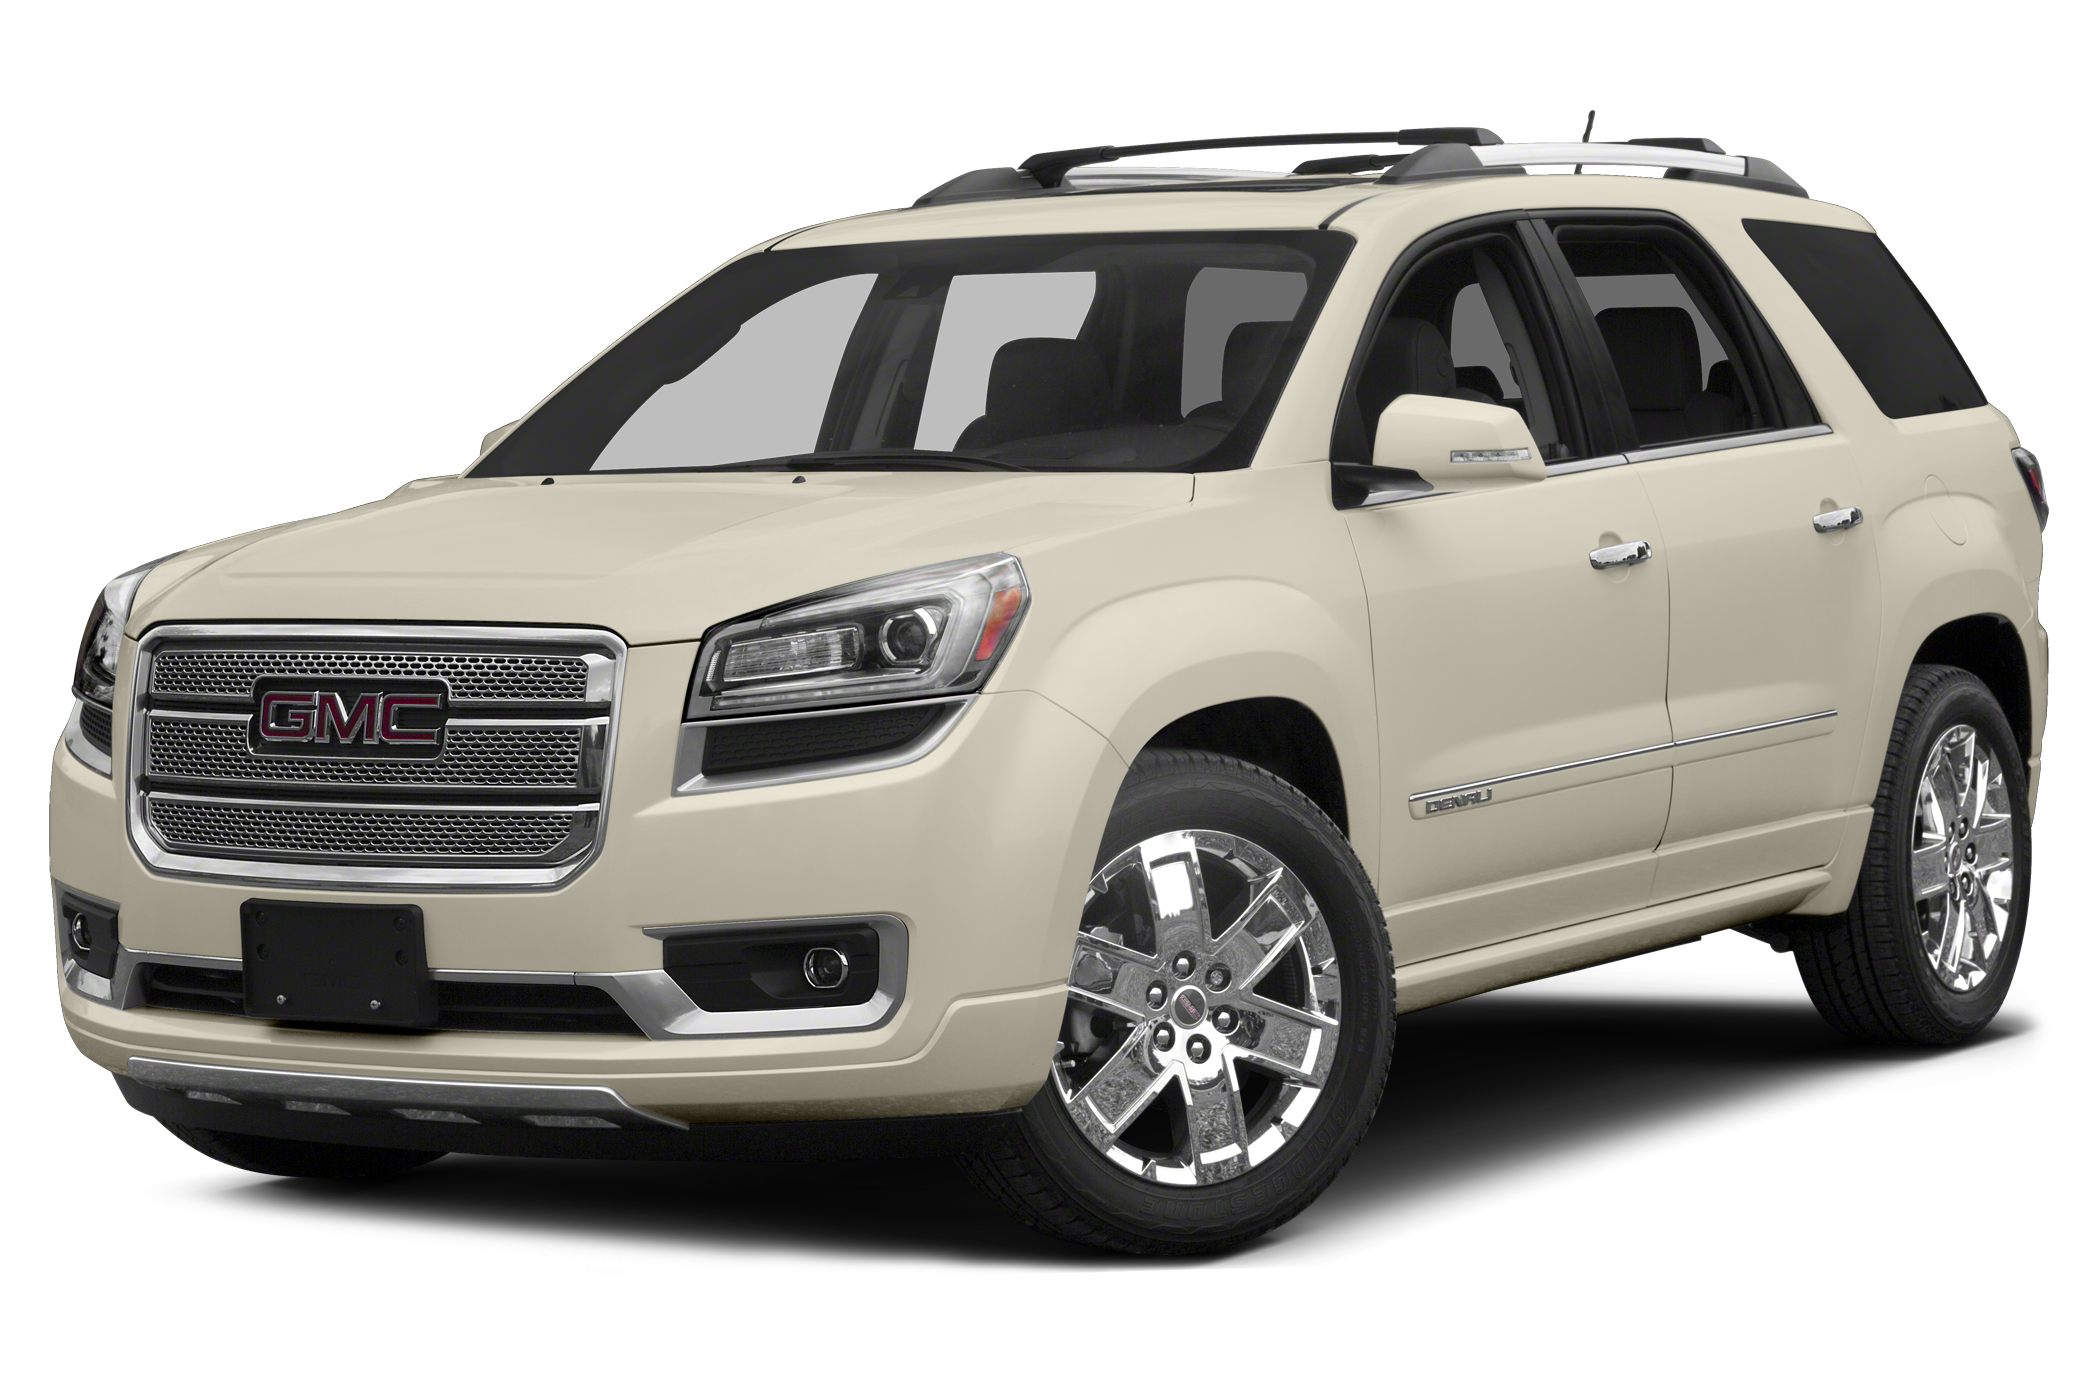 2013 GMC Acadia Denali SUV for sale in Hammond for $39,270 with 24,576 miles